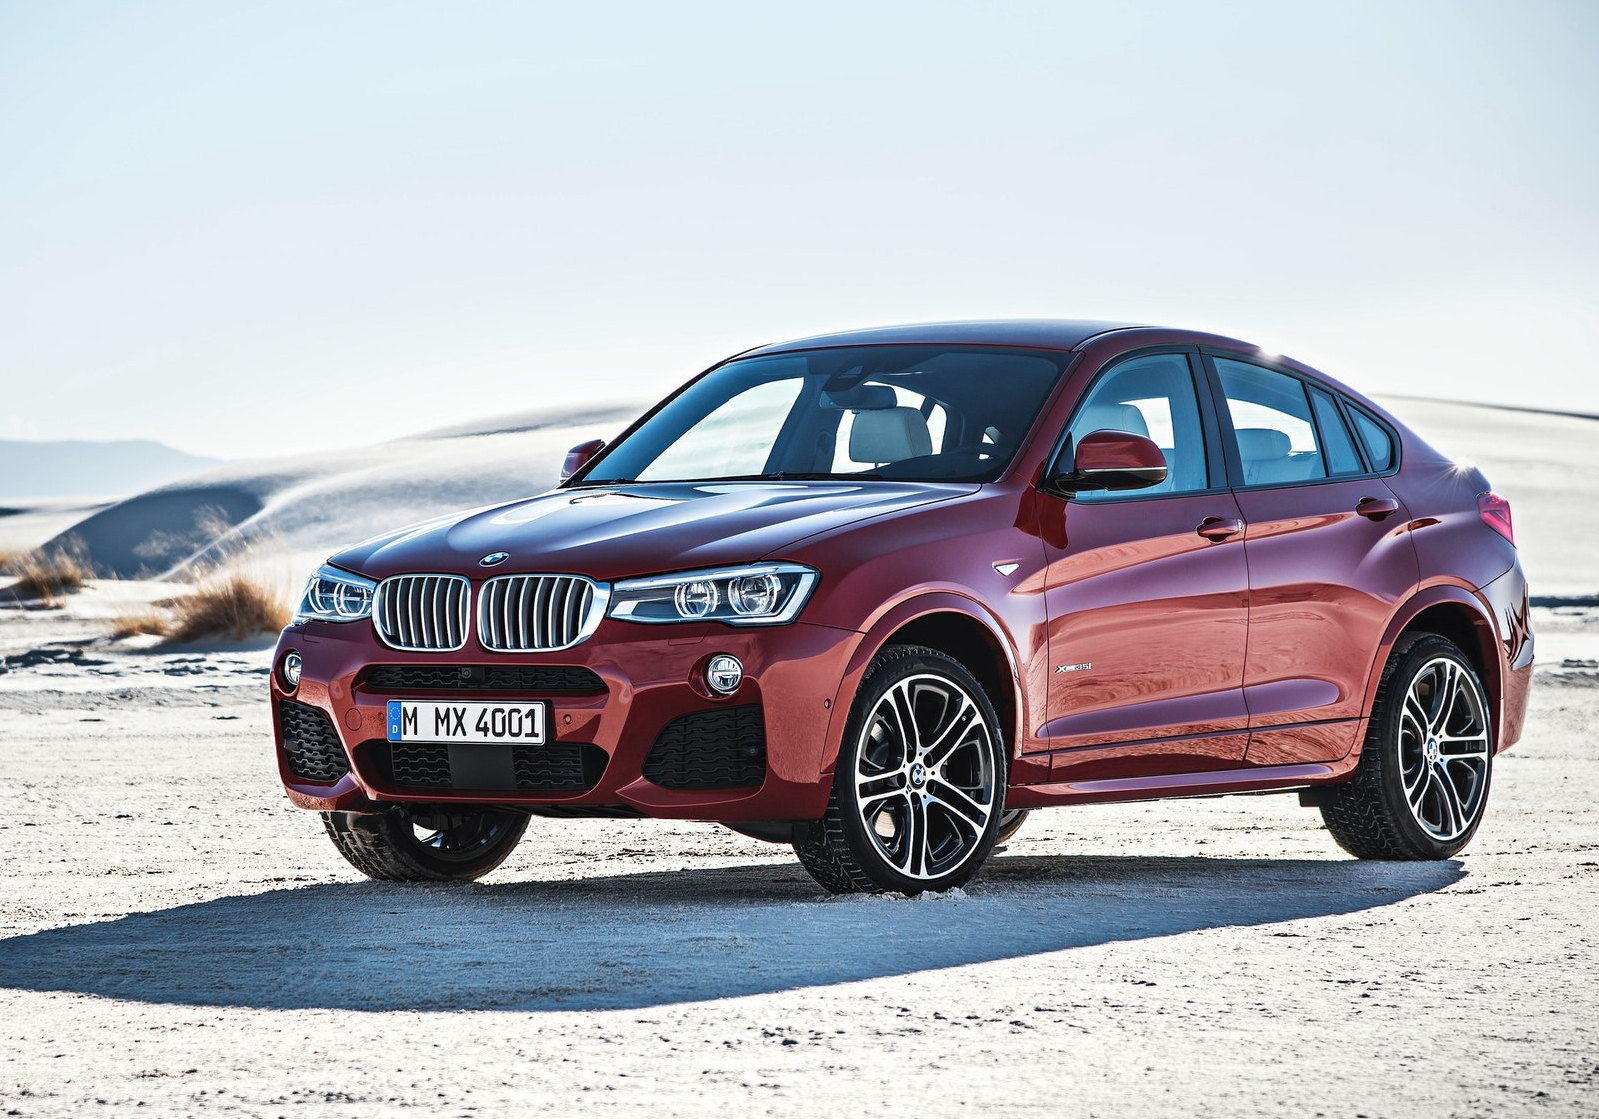 2015 Bmw X4 Ordering Guide Reveals Standard Features Autoevolution